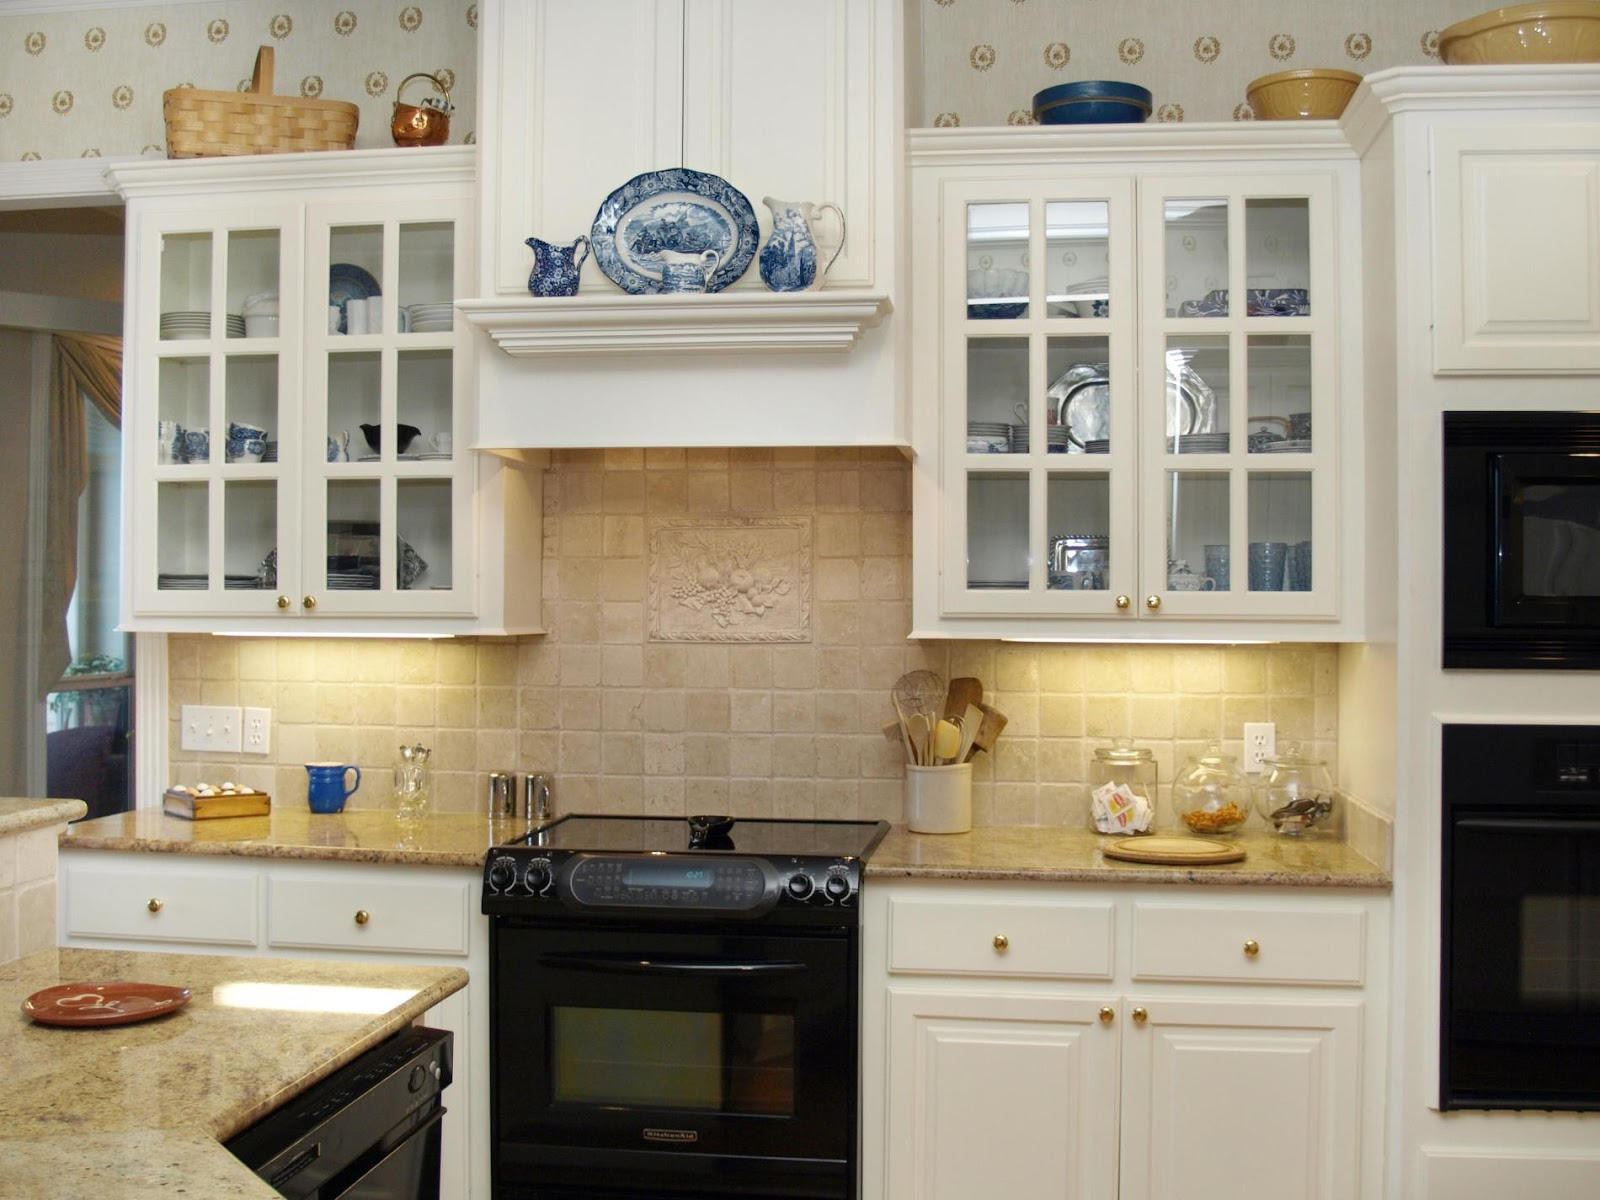 Kitchen shelves decoration dream house experience for Kitchen furnishing ideas